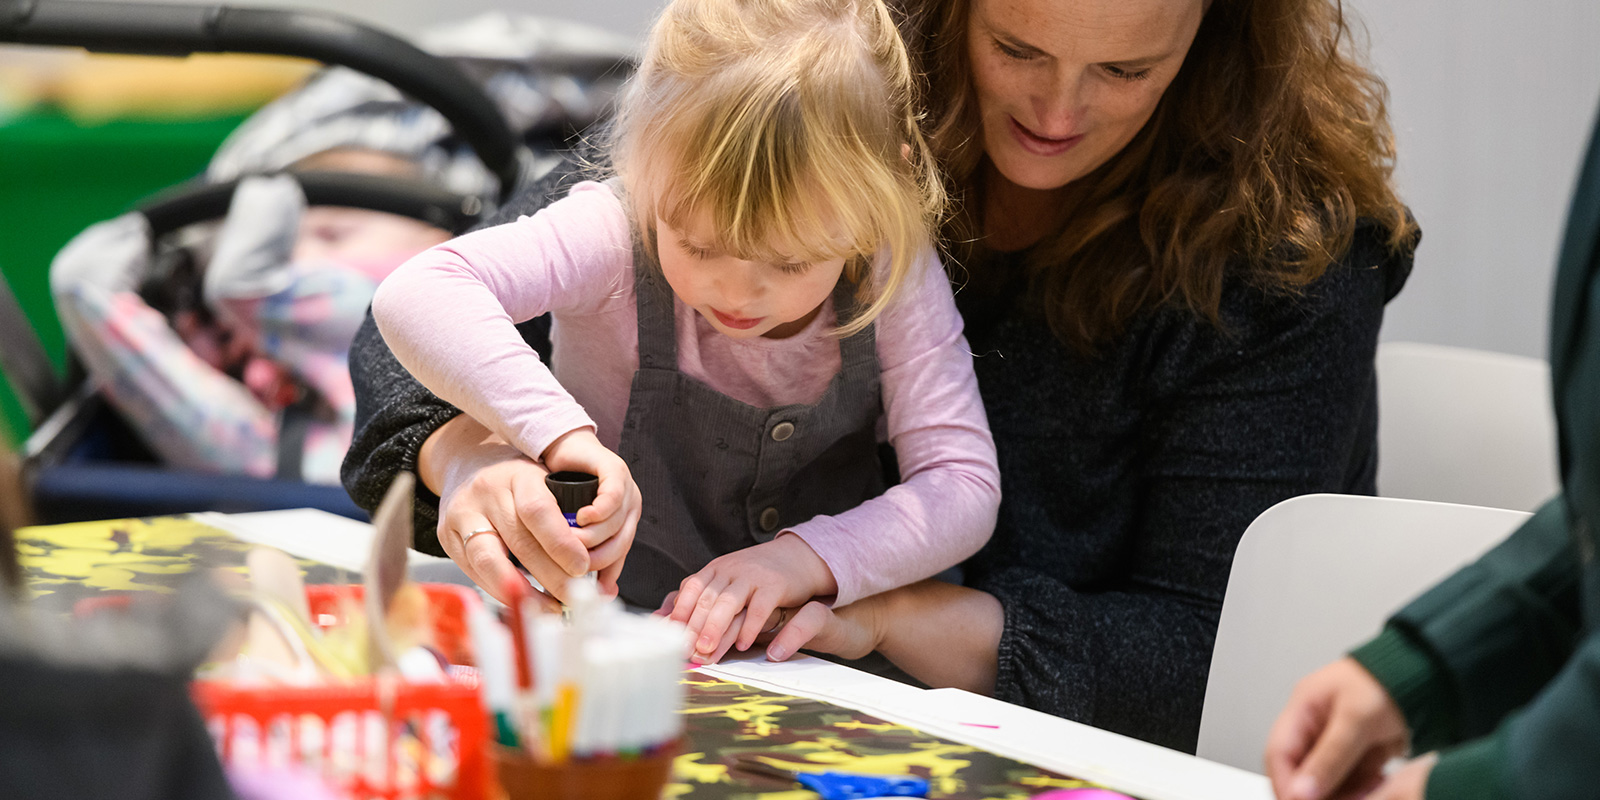 Mother and daughter involved in a craft workshop